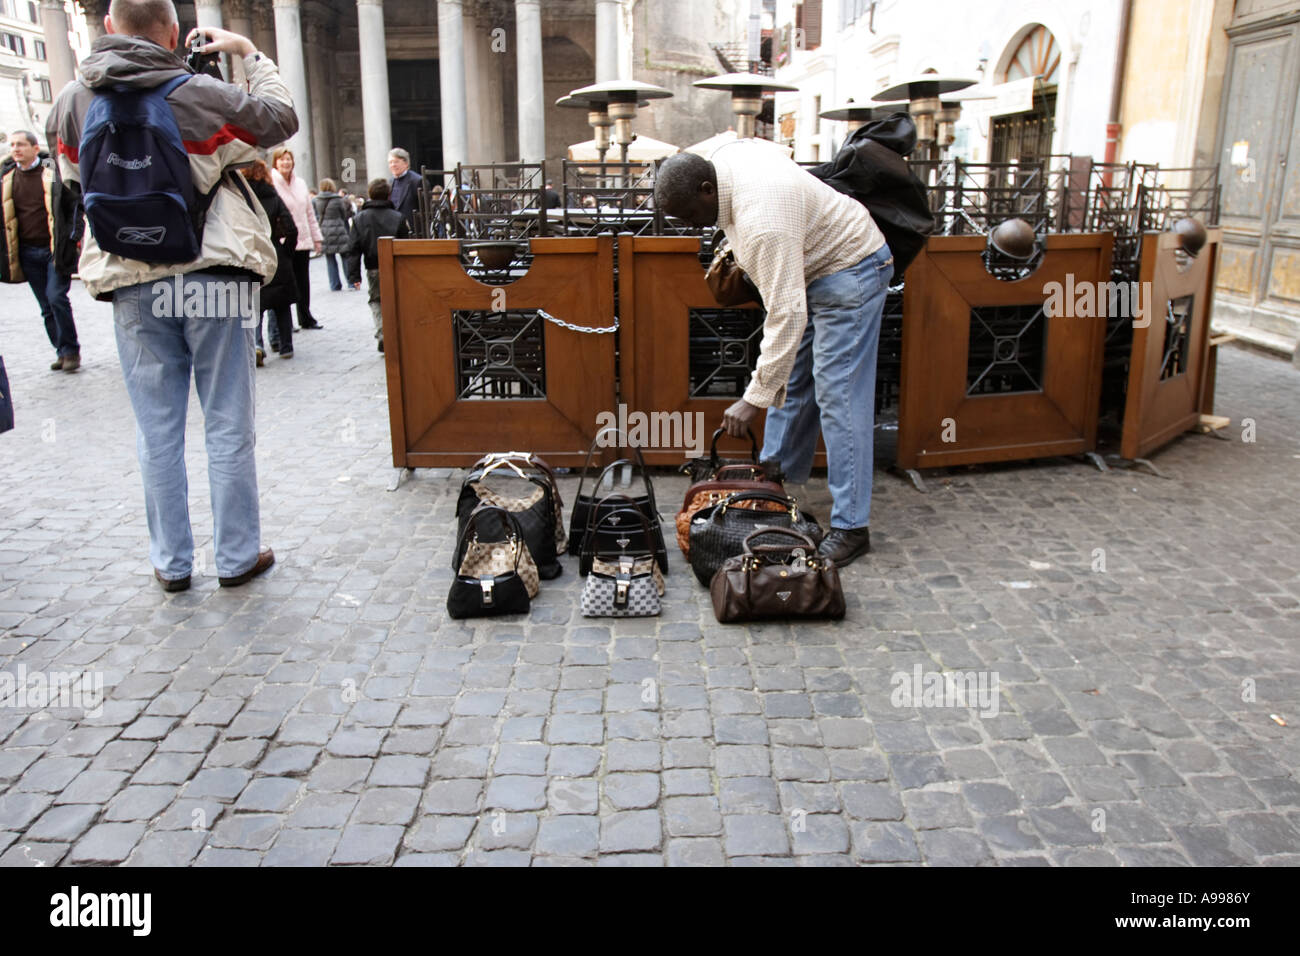 A street trader deals with designer handbags in Rome, Italy Stock Photo